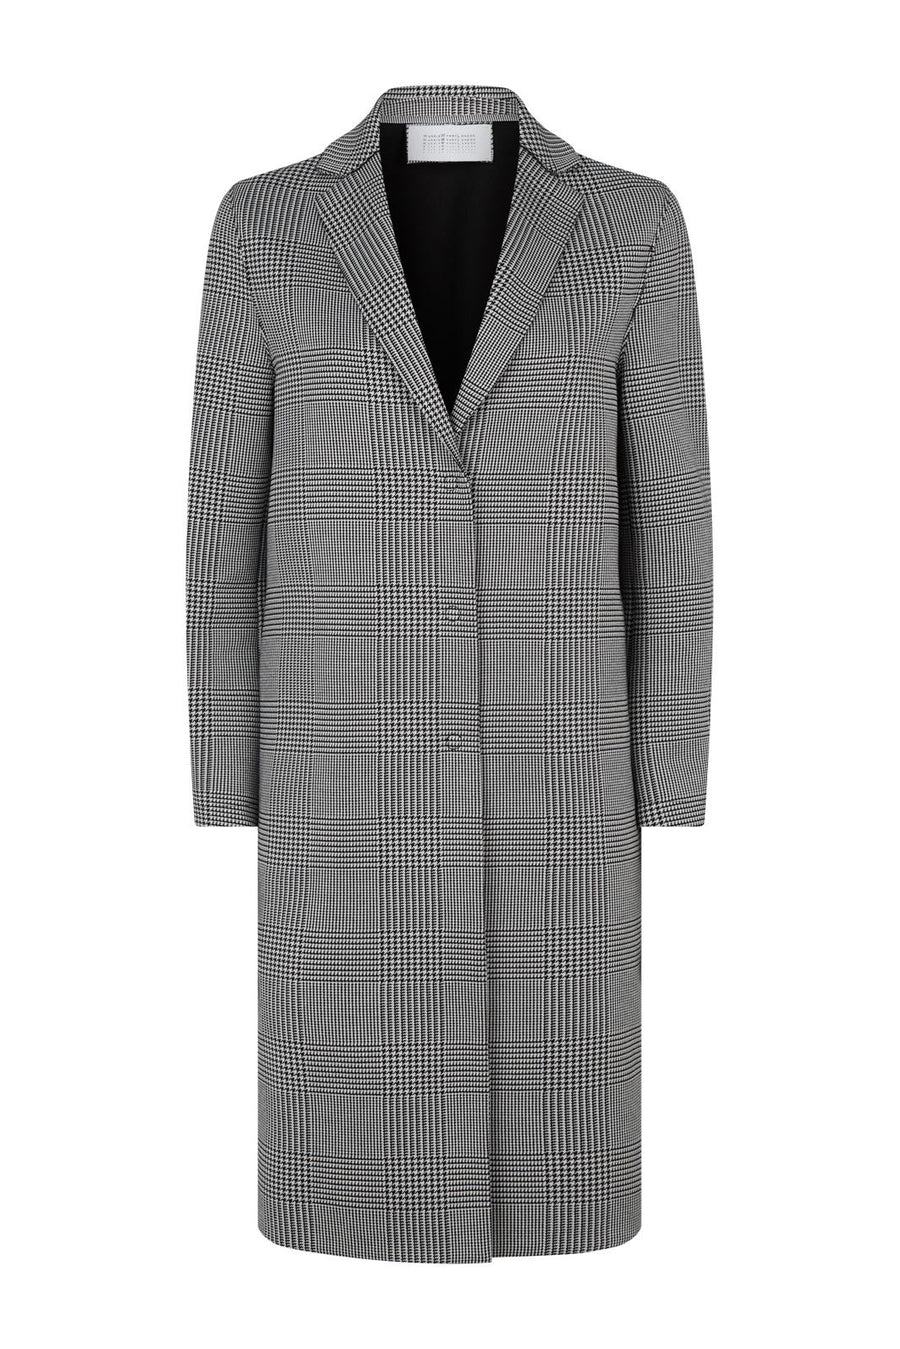 Prince of Wales Overcoat - Black and White